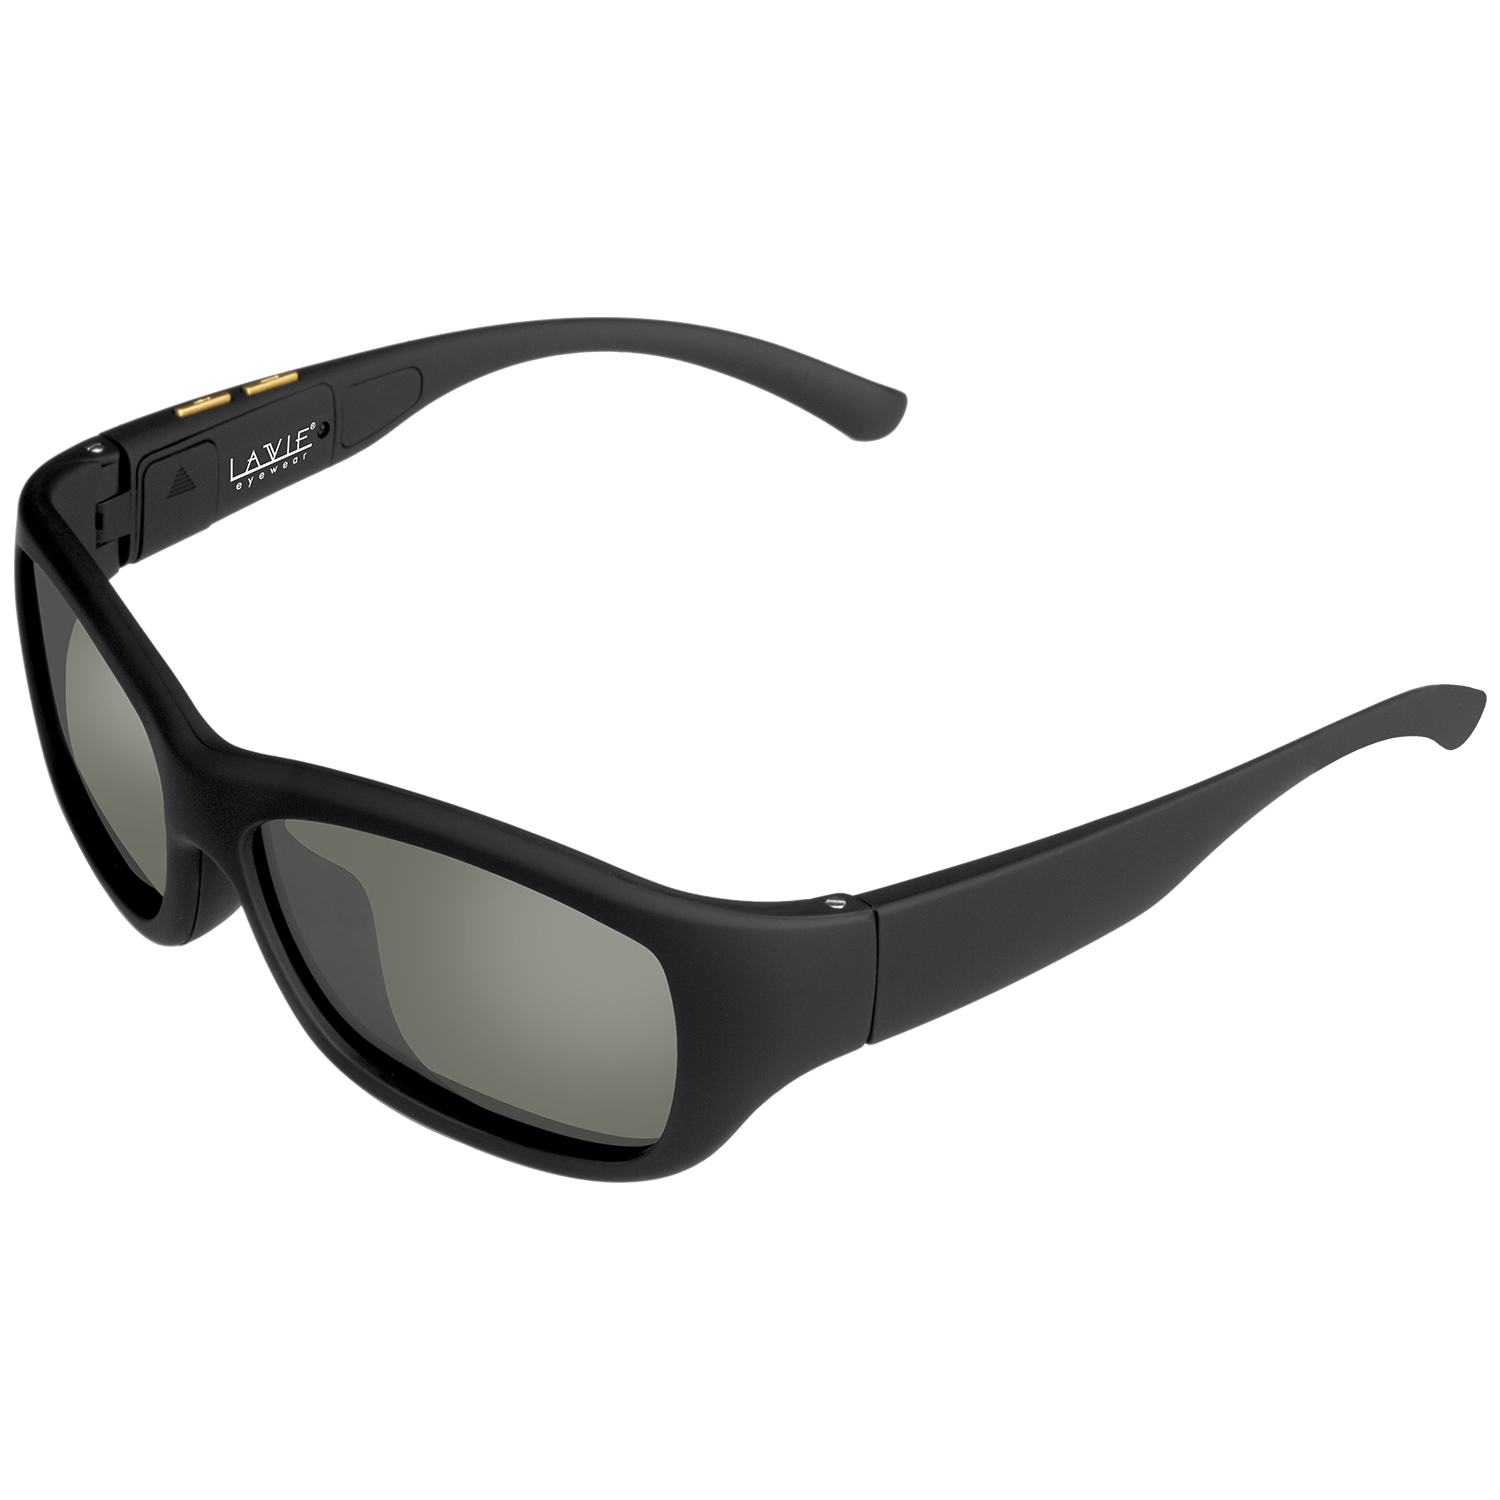 Sunglasses With Variable Electronic Tint Control Let Your Sunglasses Adapt To The Light Of Surroundings Sunglasses Men Polarized